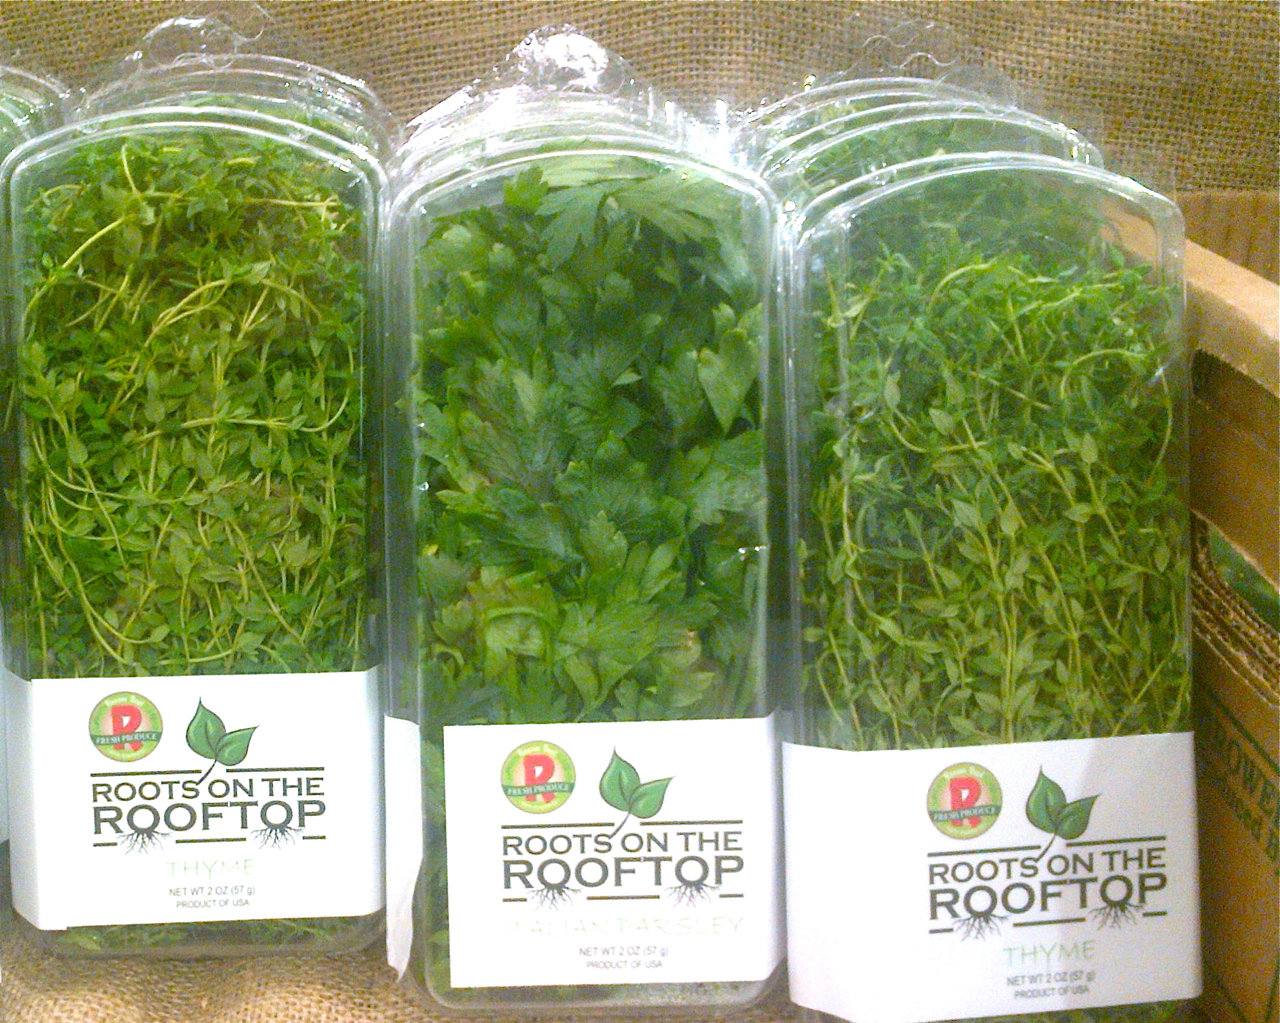 Roots On The Rooftop! – Recirculating Farms Coalition